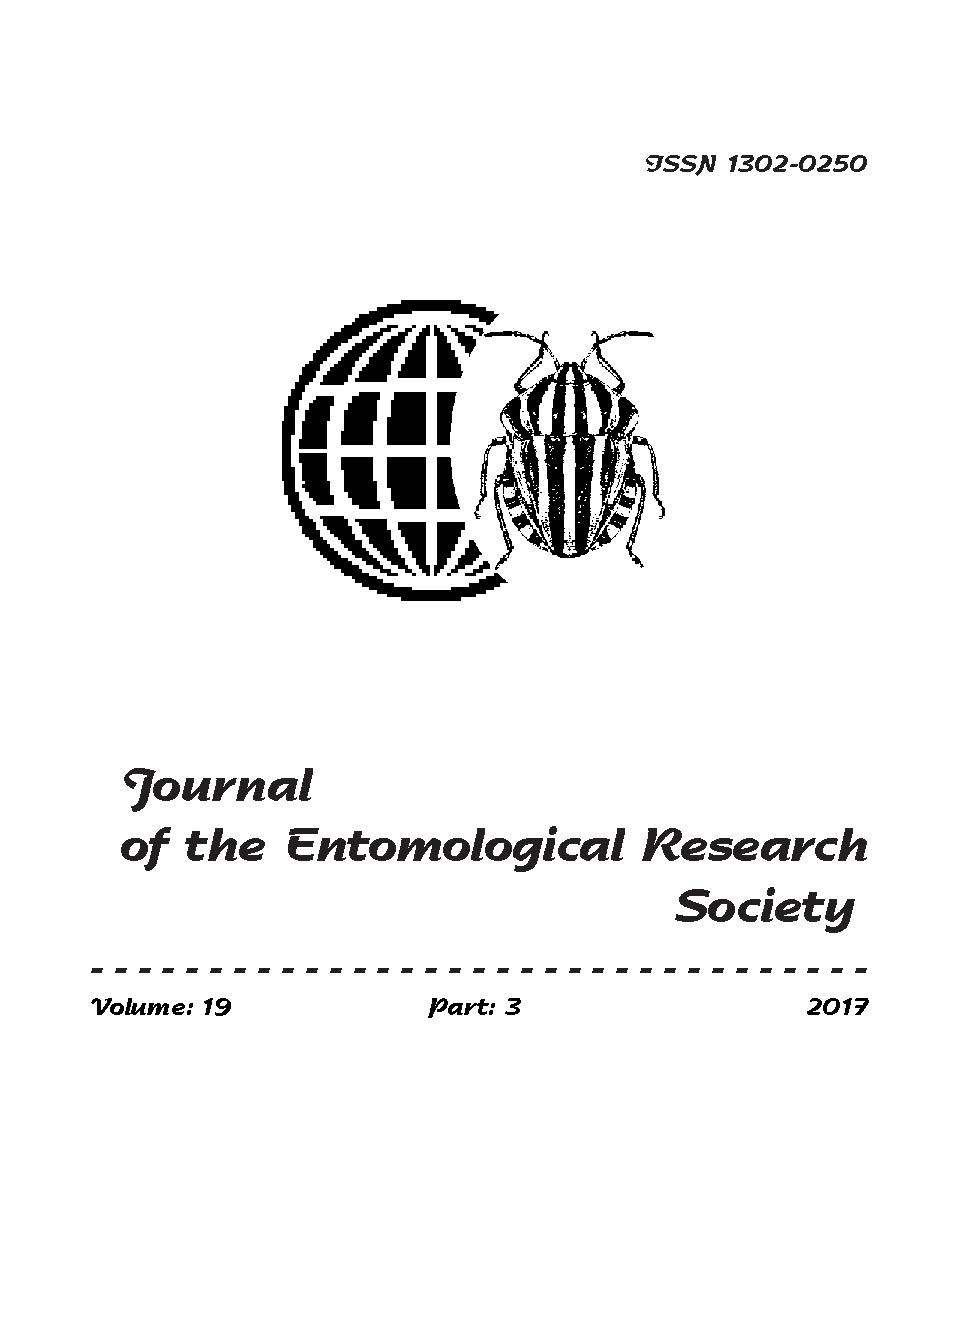 View Vol. 19 No. 3 (2017): Journal of the Entomological Research Society